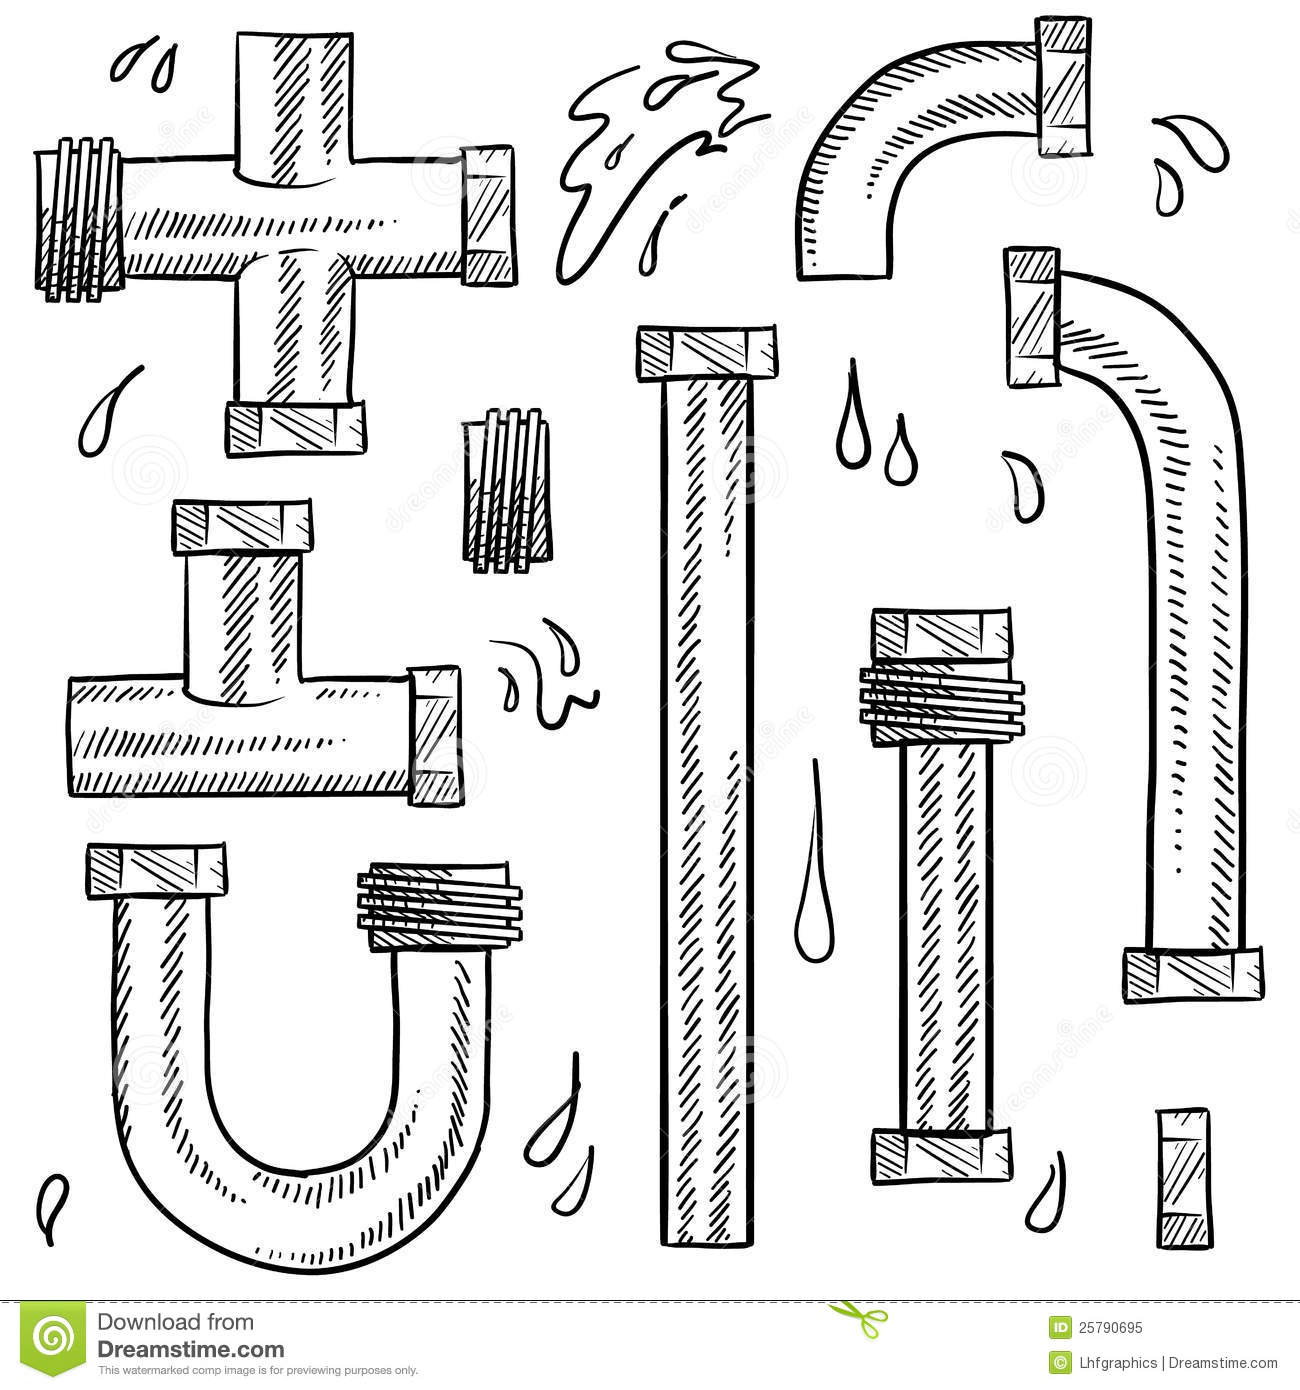 Water Pipes Sketch Cartoon Vector